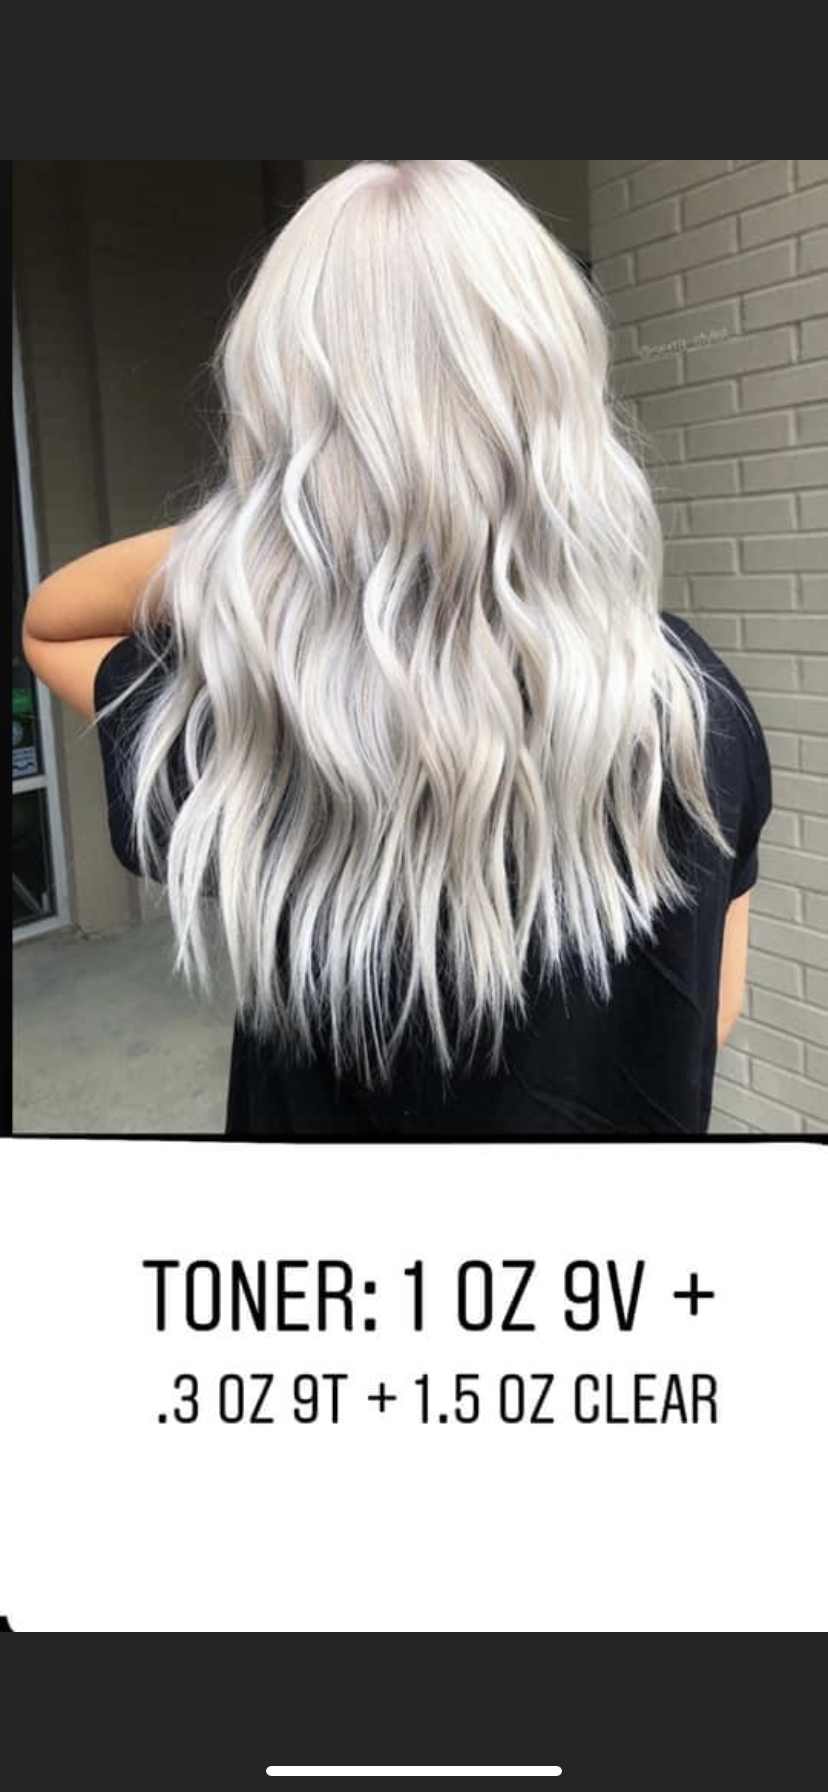 Pin By Isabela Rui On Shades Formulations In 2020 Hair Color Formulas Redken Hair Color Hair Techniques